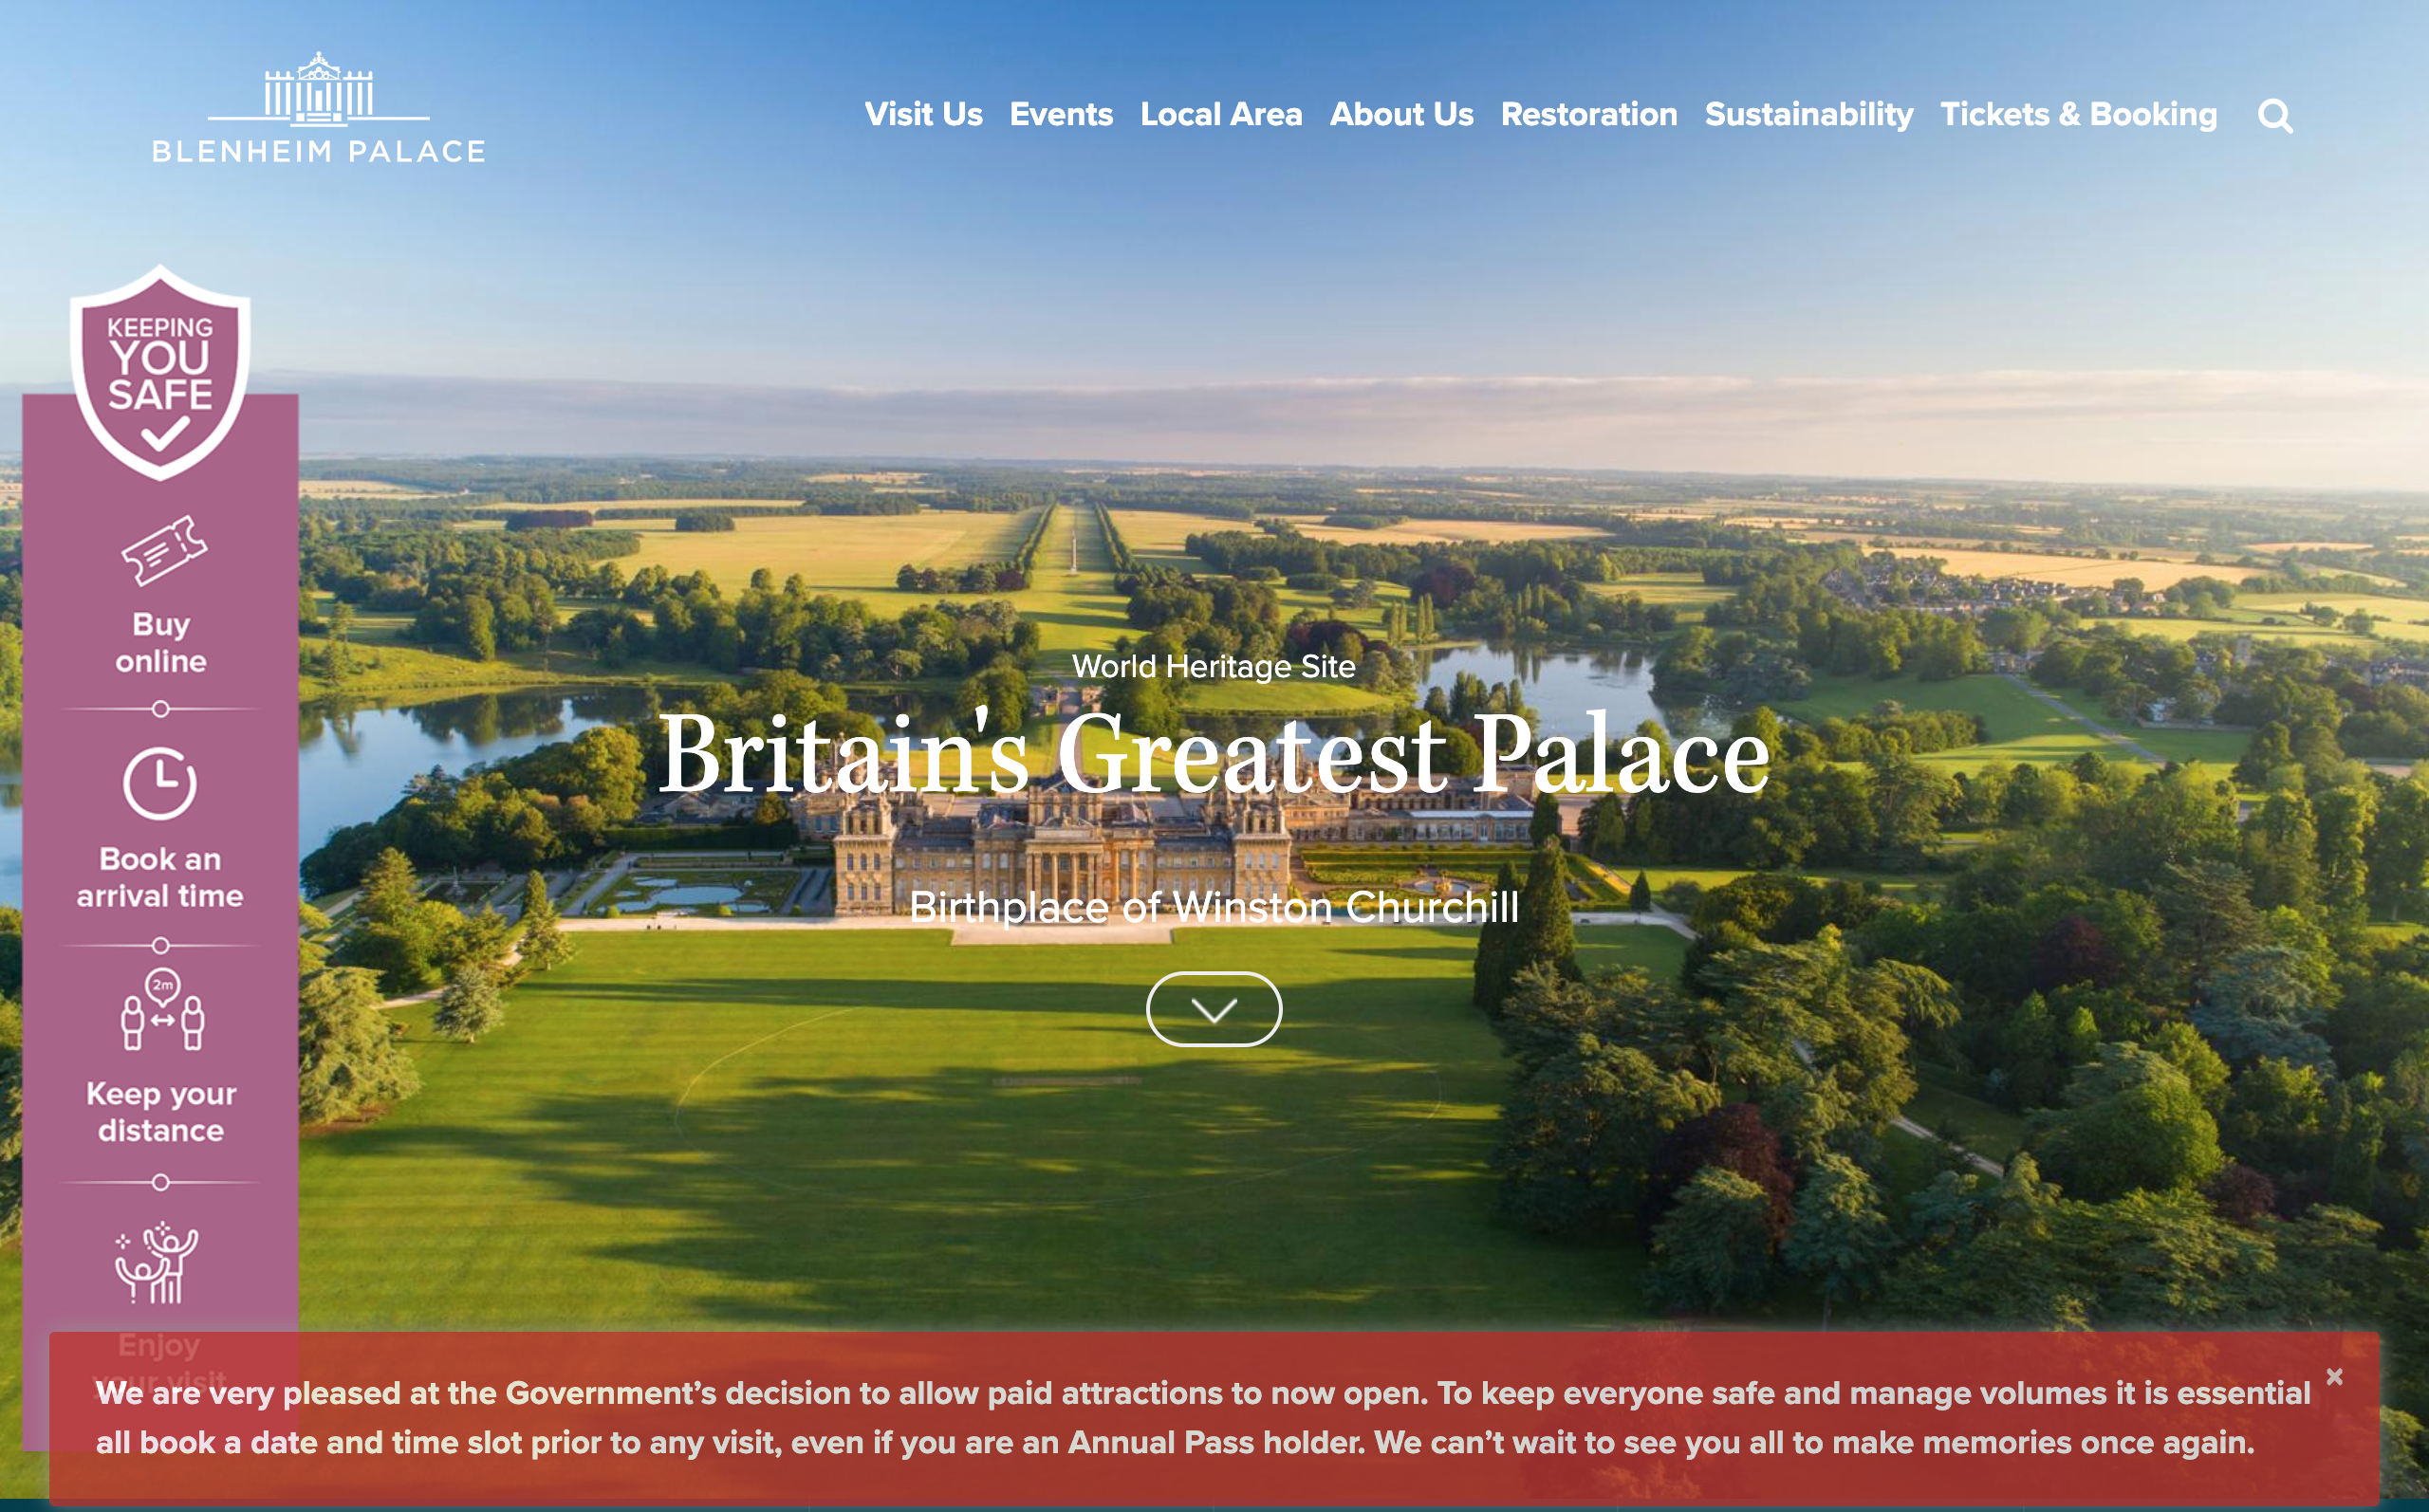 The homepage of Blenheim Palace makes clear what visitors need to do, uses icons, addresses members, and still show the beauty of the attraction.